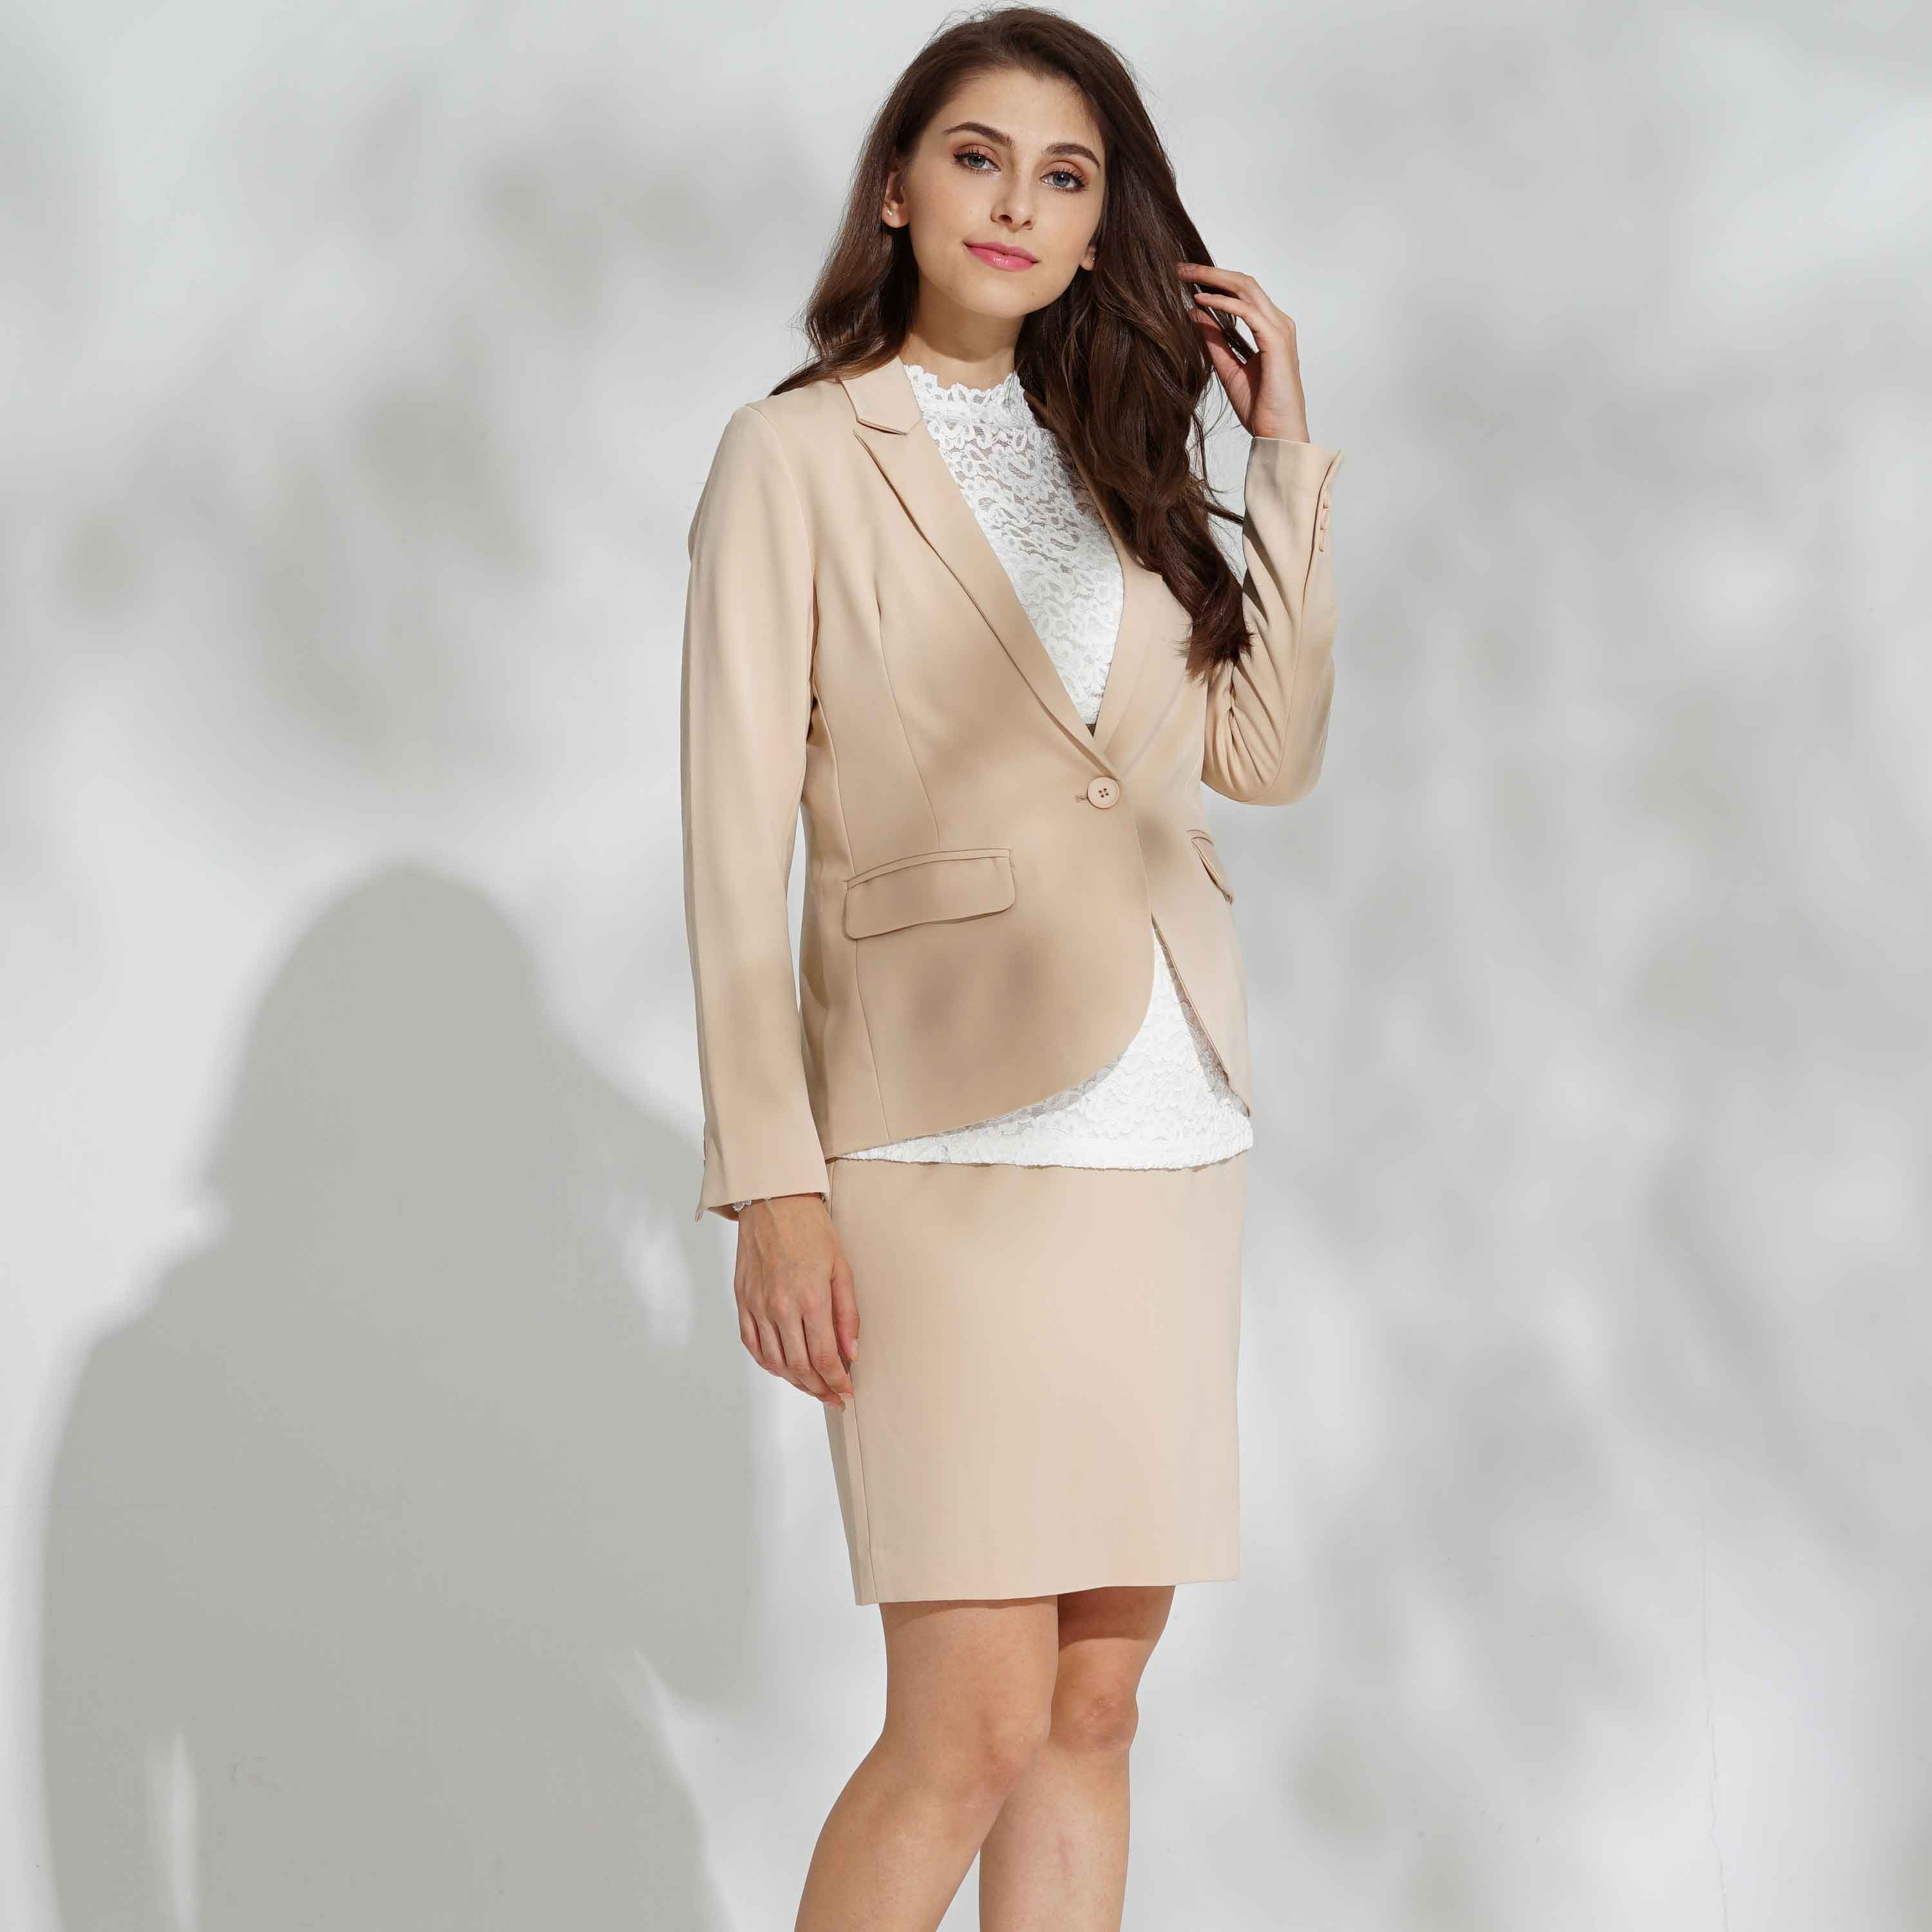 Sweet Mommy Maternity and Post-Partum Classic Jacket Skirt Suit